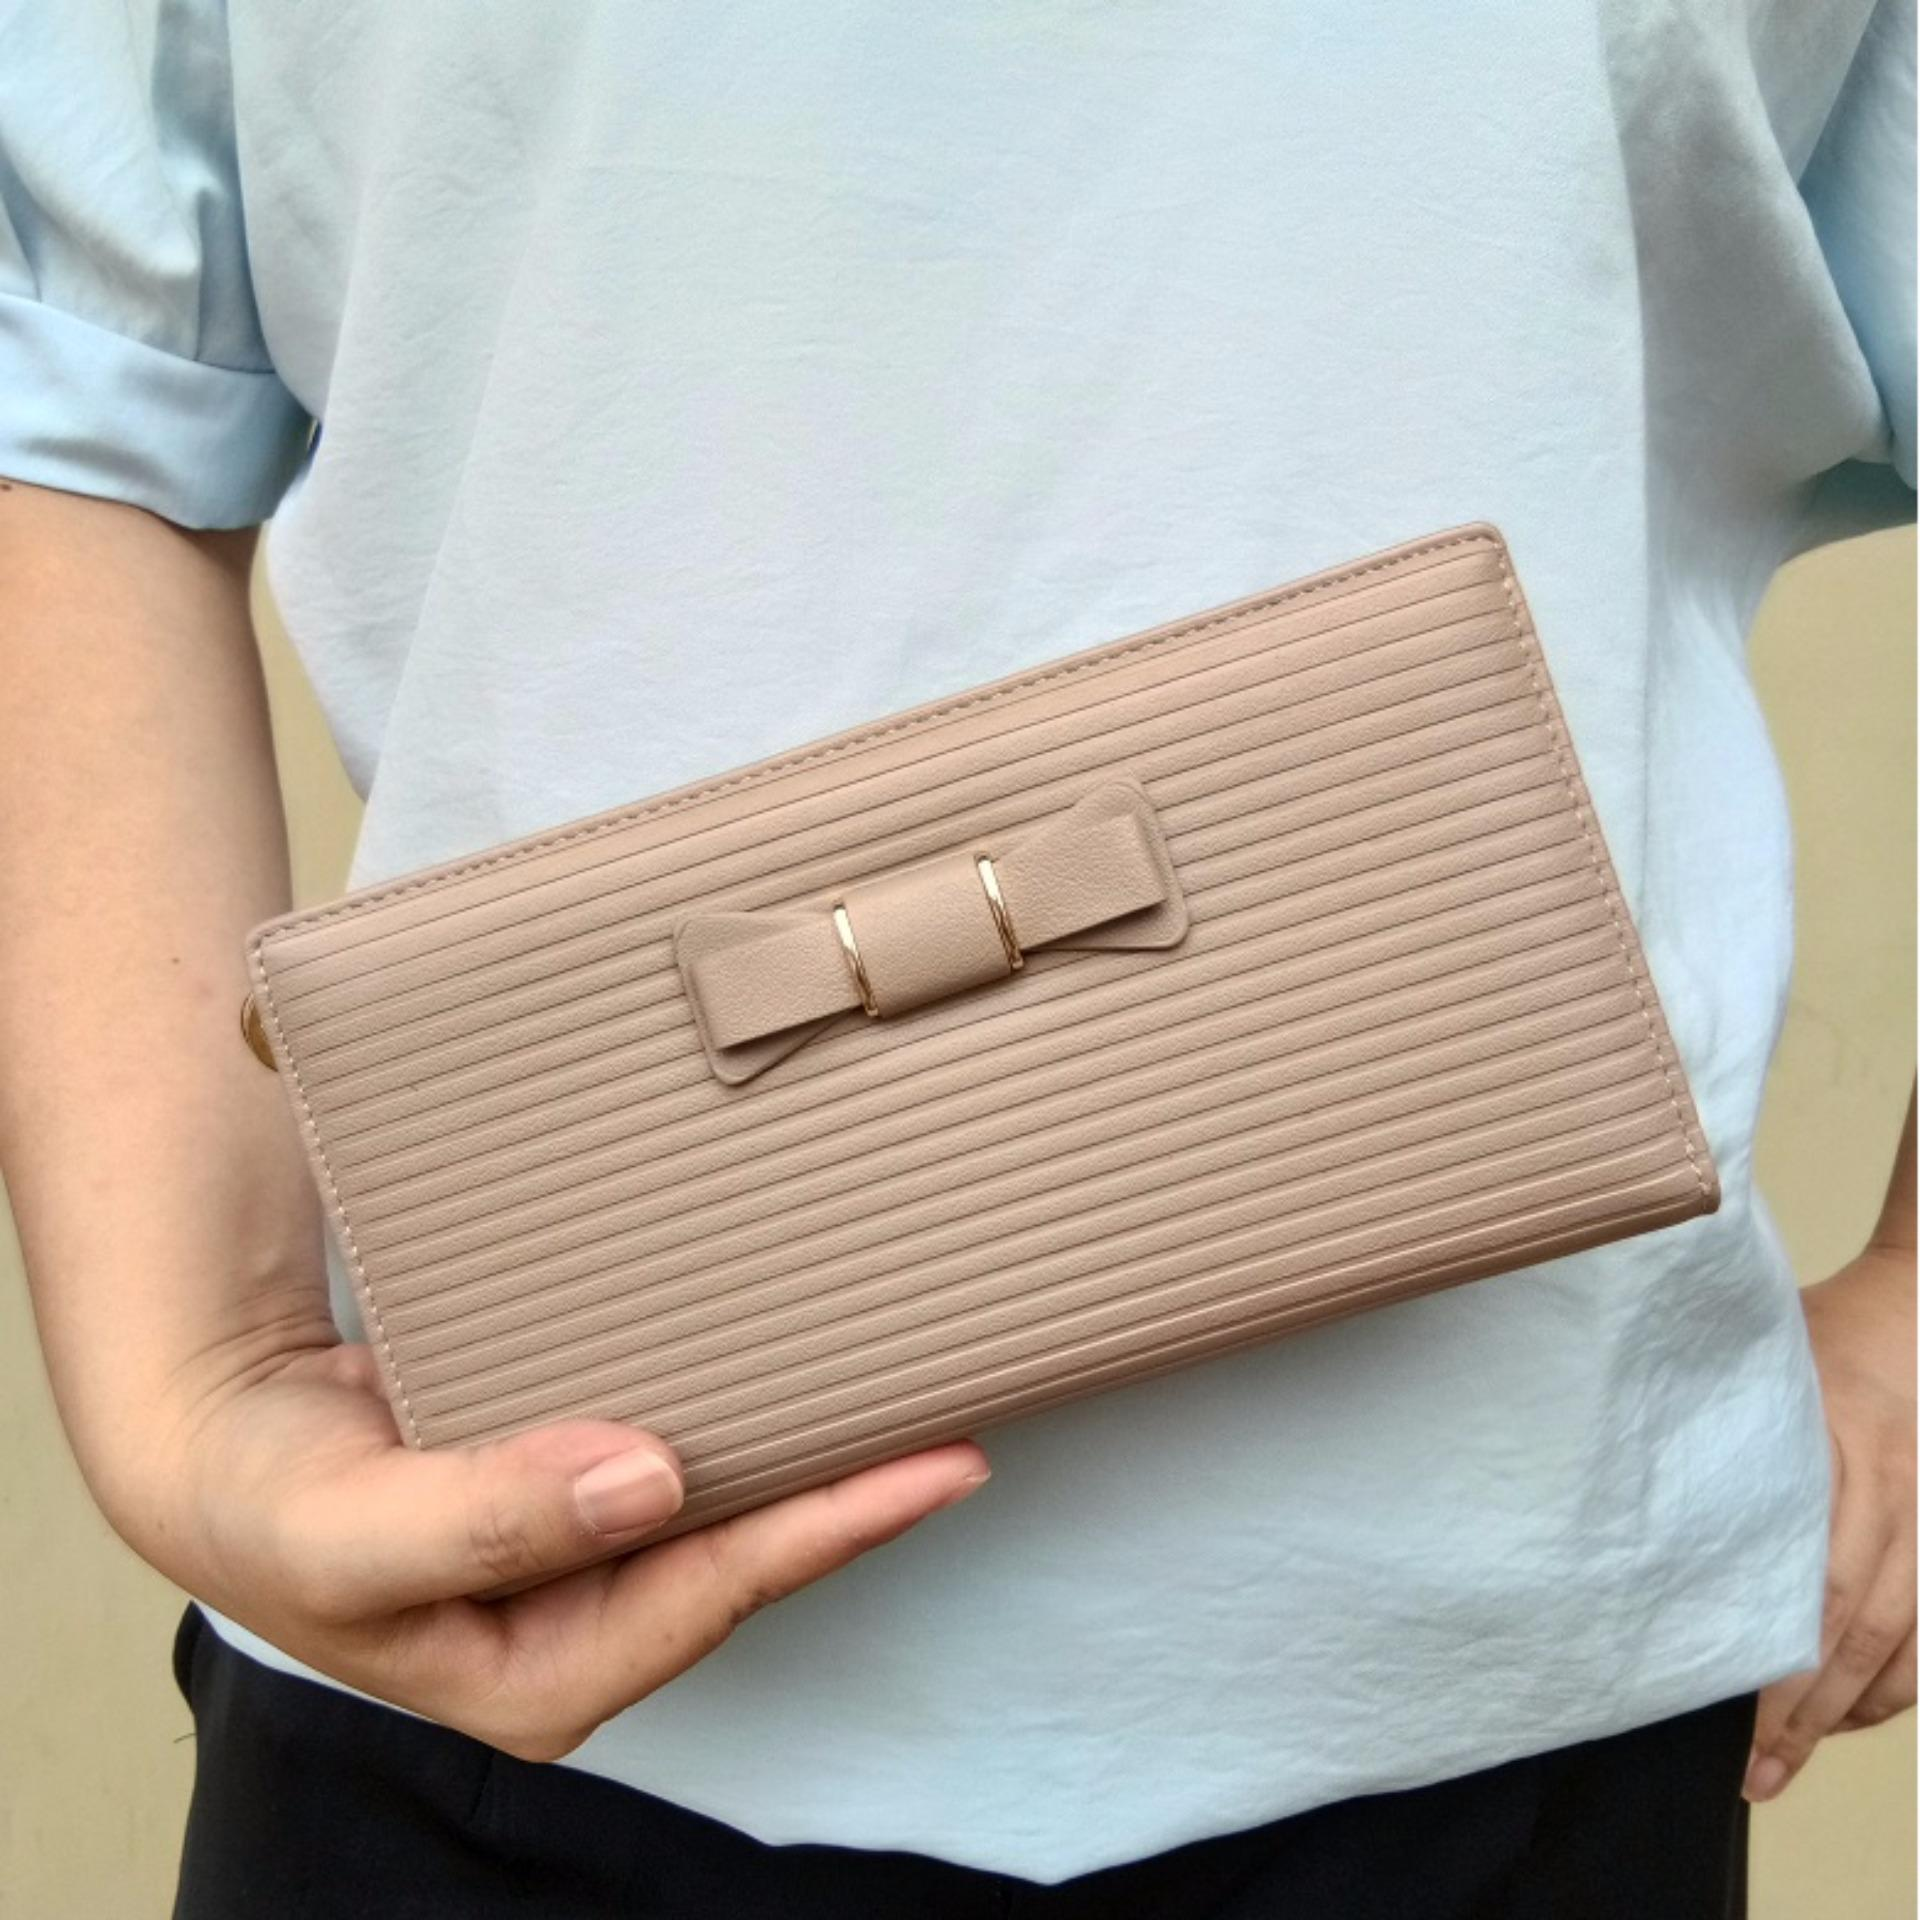 Spesifikasi Jcf Multifungsi Dompet Clutch Wanita Fashion Branded Pu Leather Import Alice Light Brown Bagus Dan Mewah Online